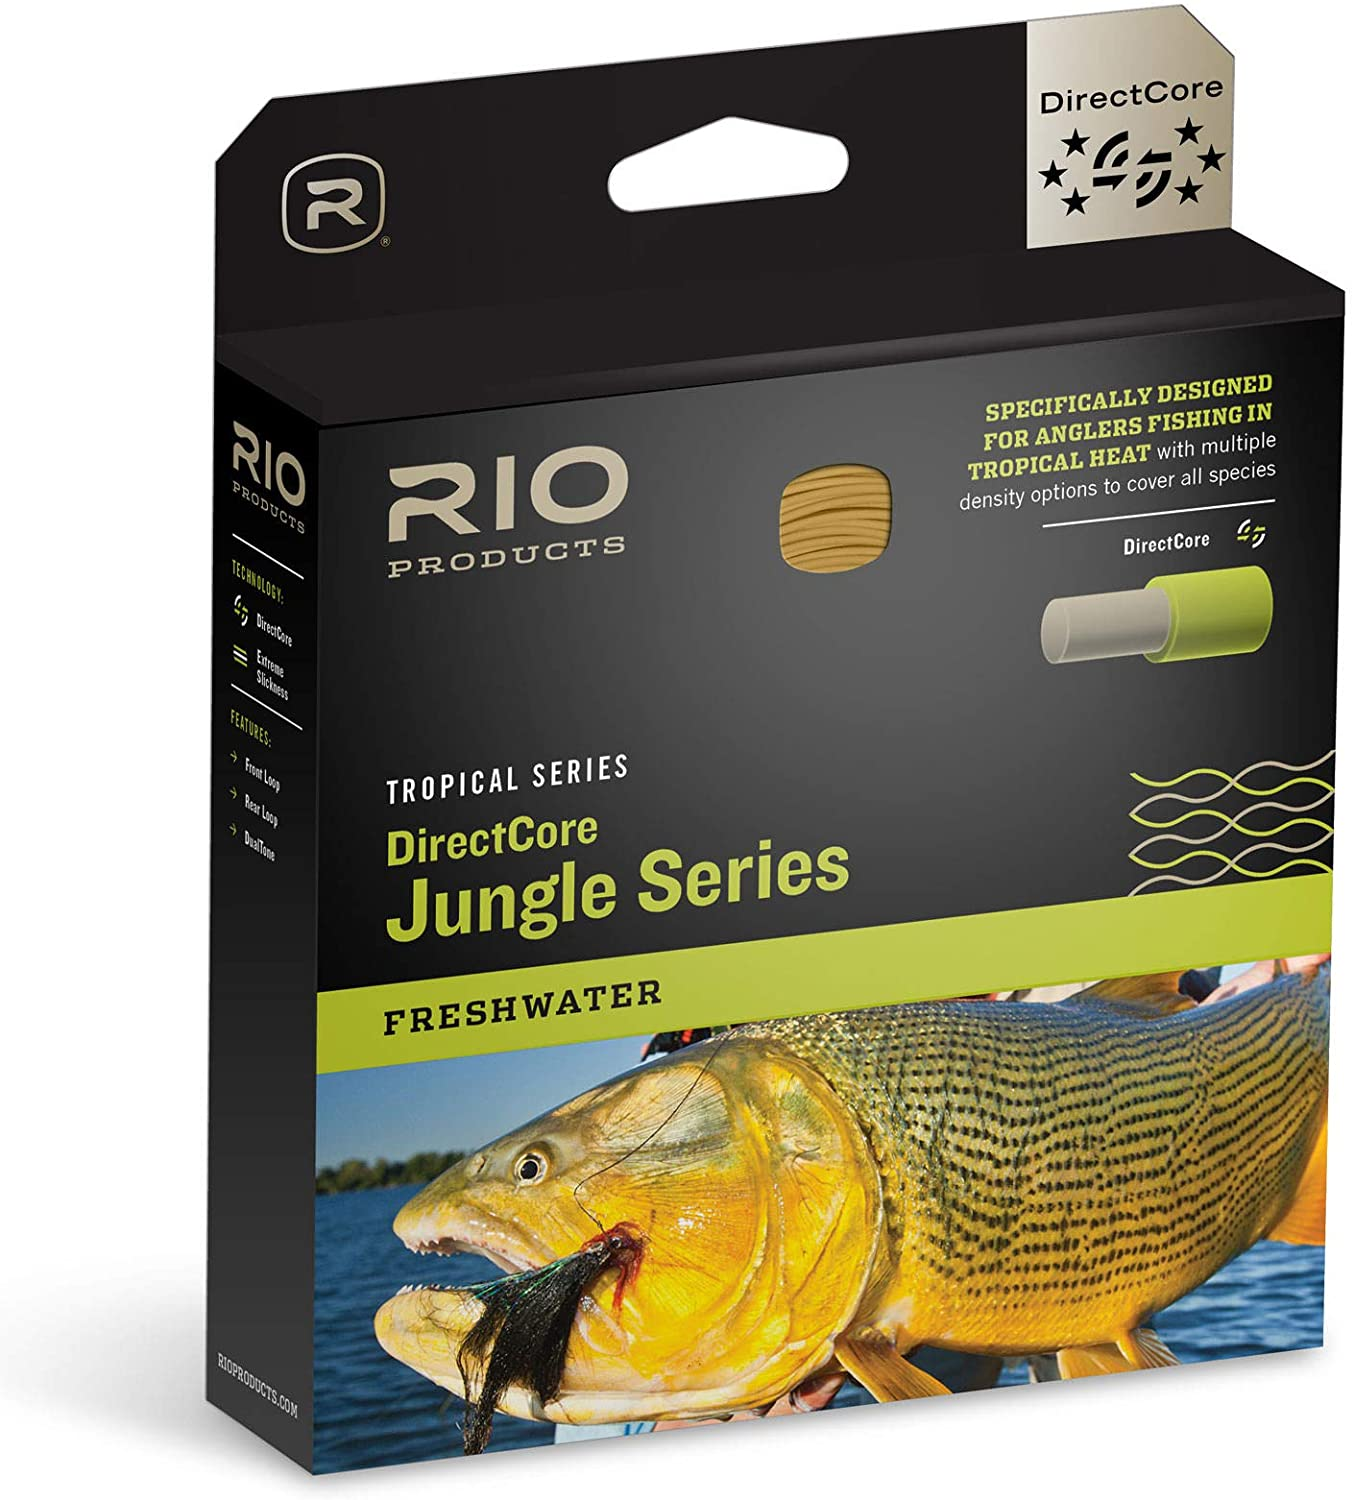 RIO Products Brands DirectCore Jungle Fly Line